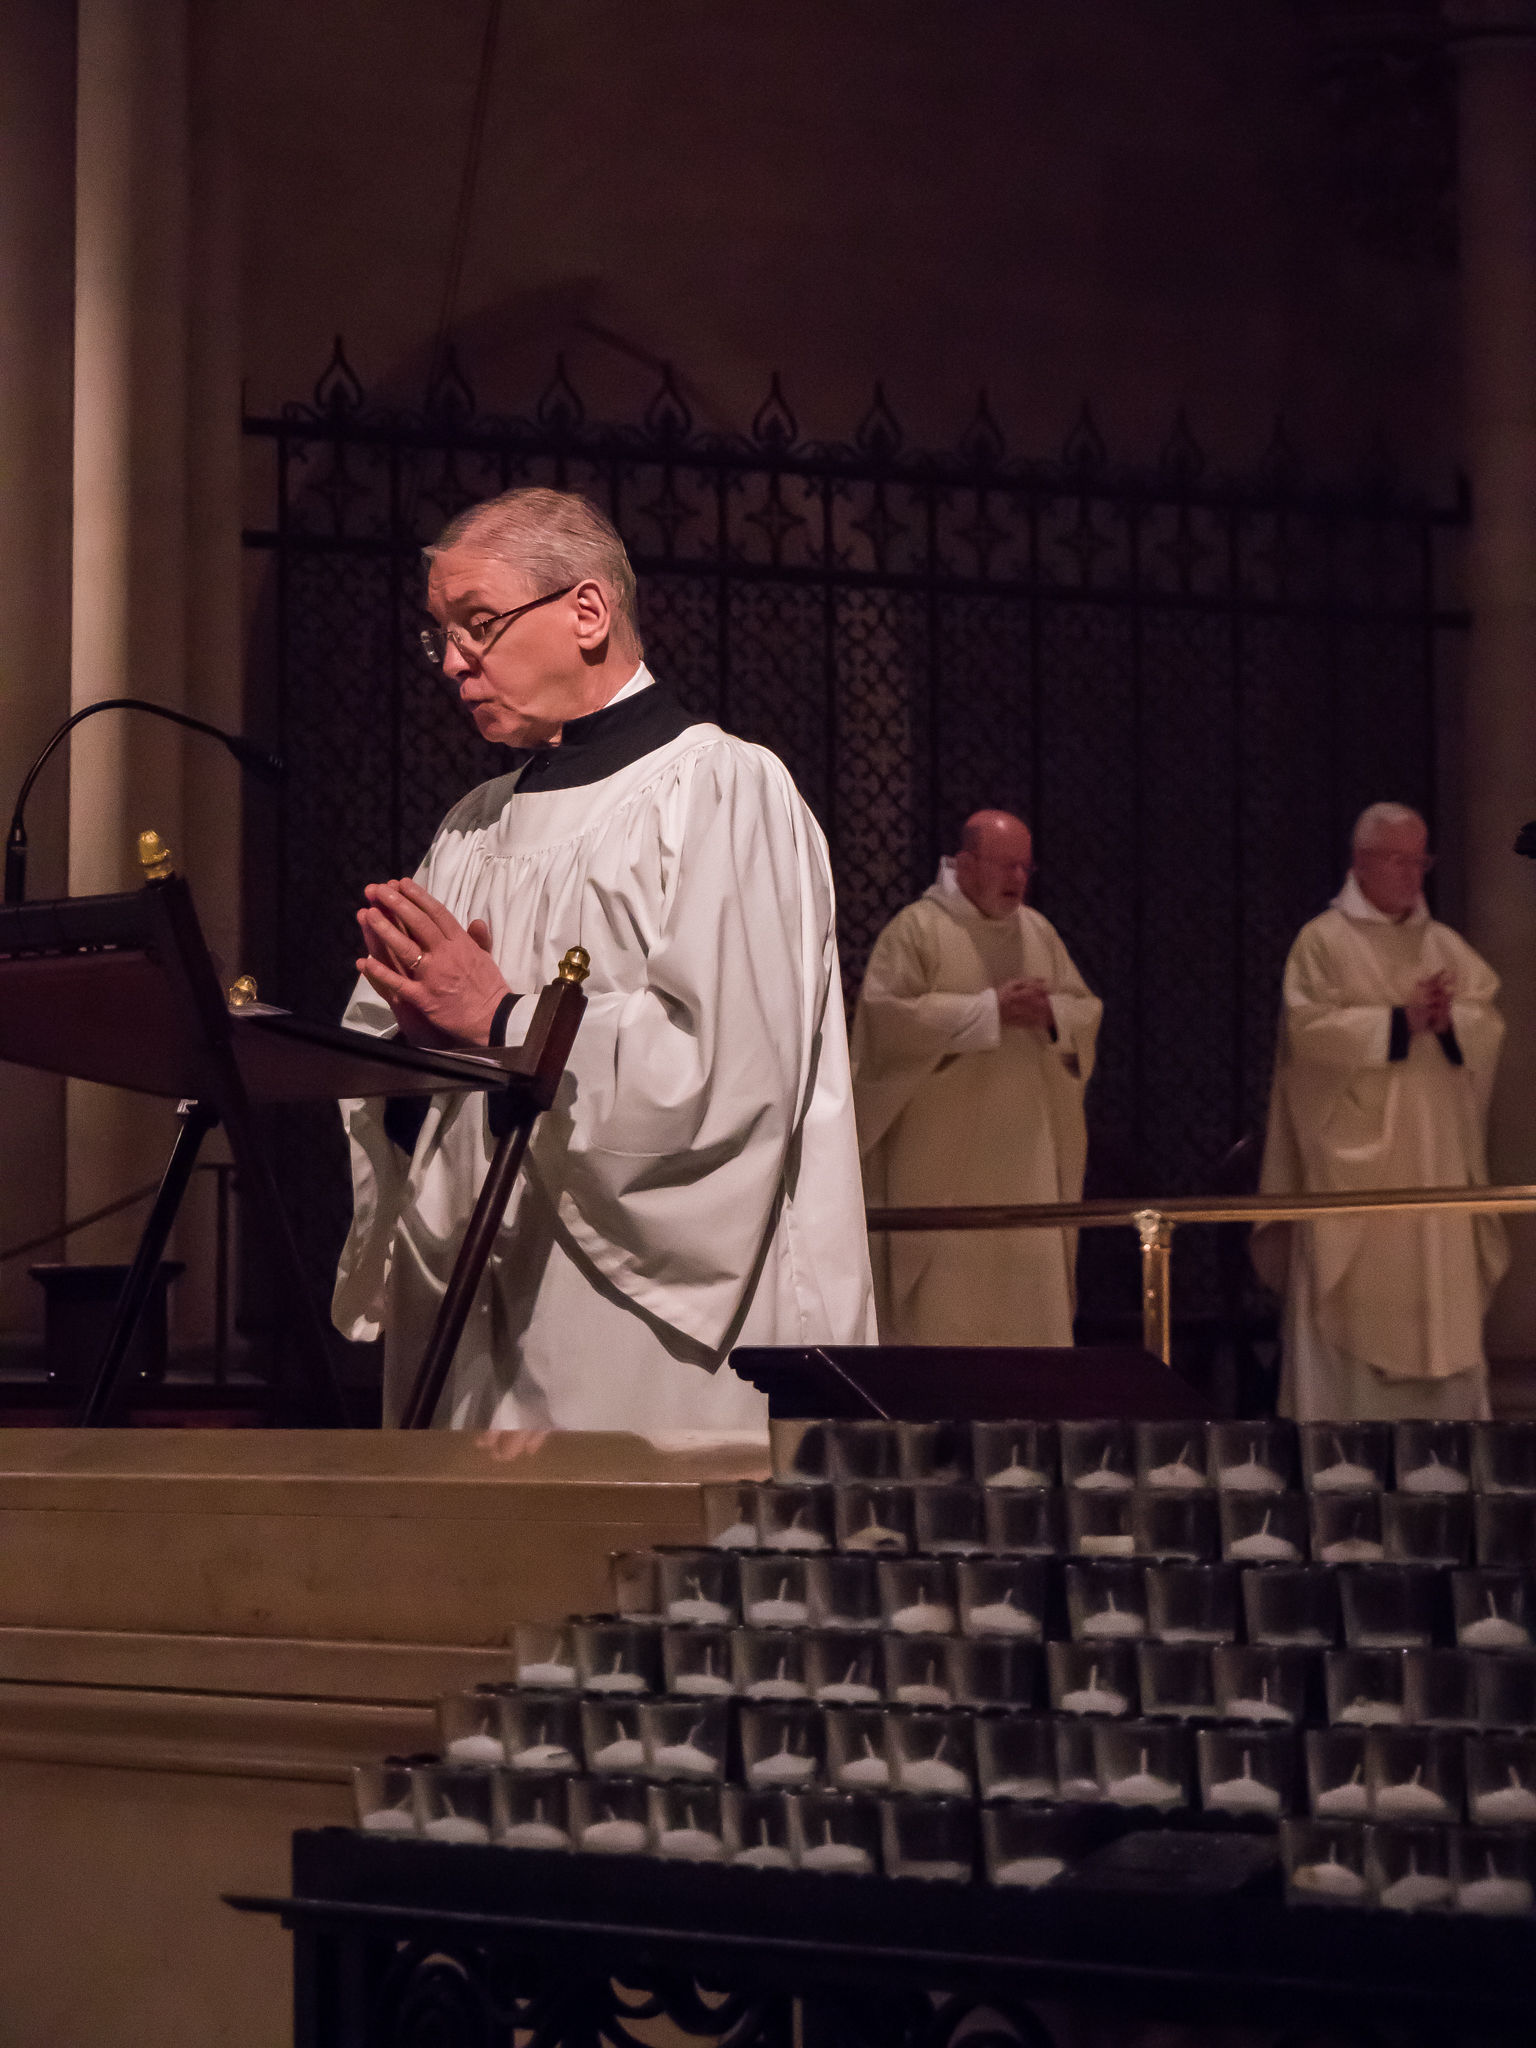 The Prayers of the People: When the deacon is away, a layperson (on Christ the King, Dr. Leroy Sharer) sings the prayers at Solemn Mass.  Photo by Ricardo Gomez